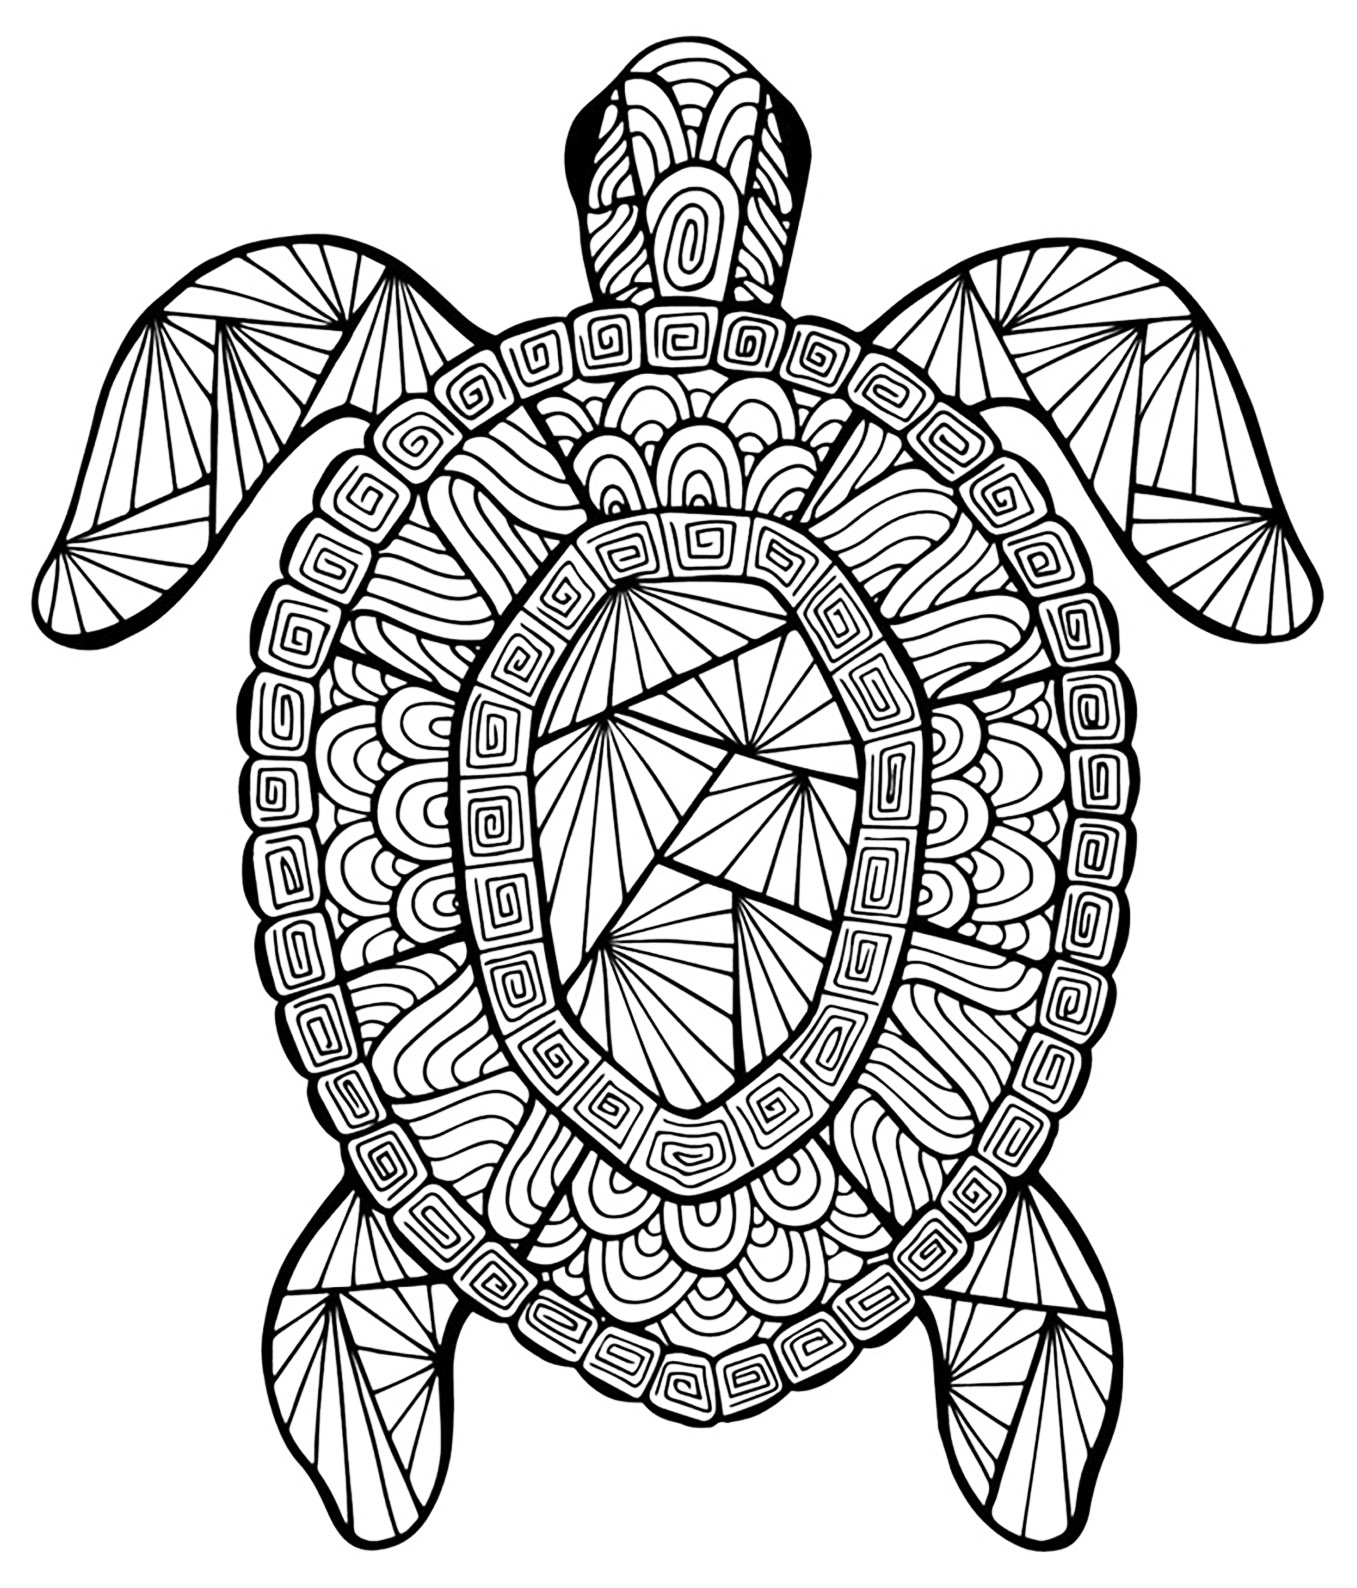 Captivating Coloring Page : Turtle. Turtle